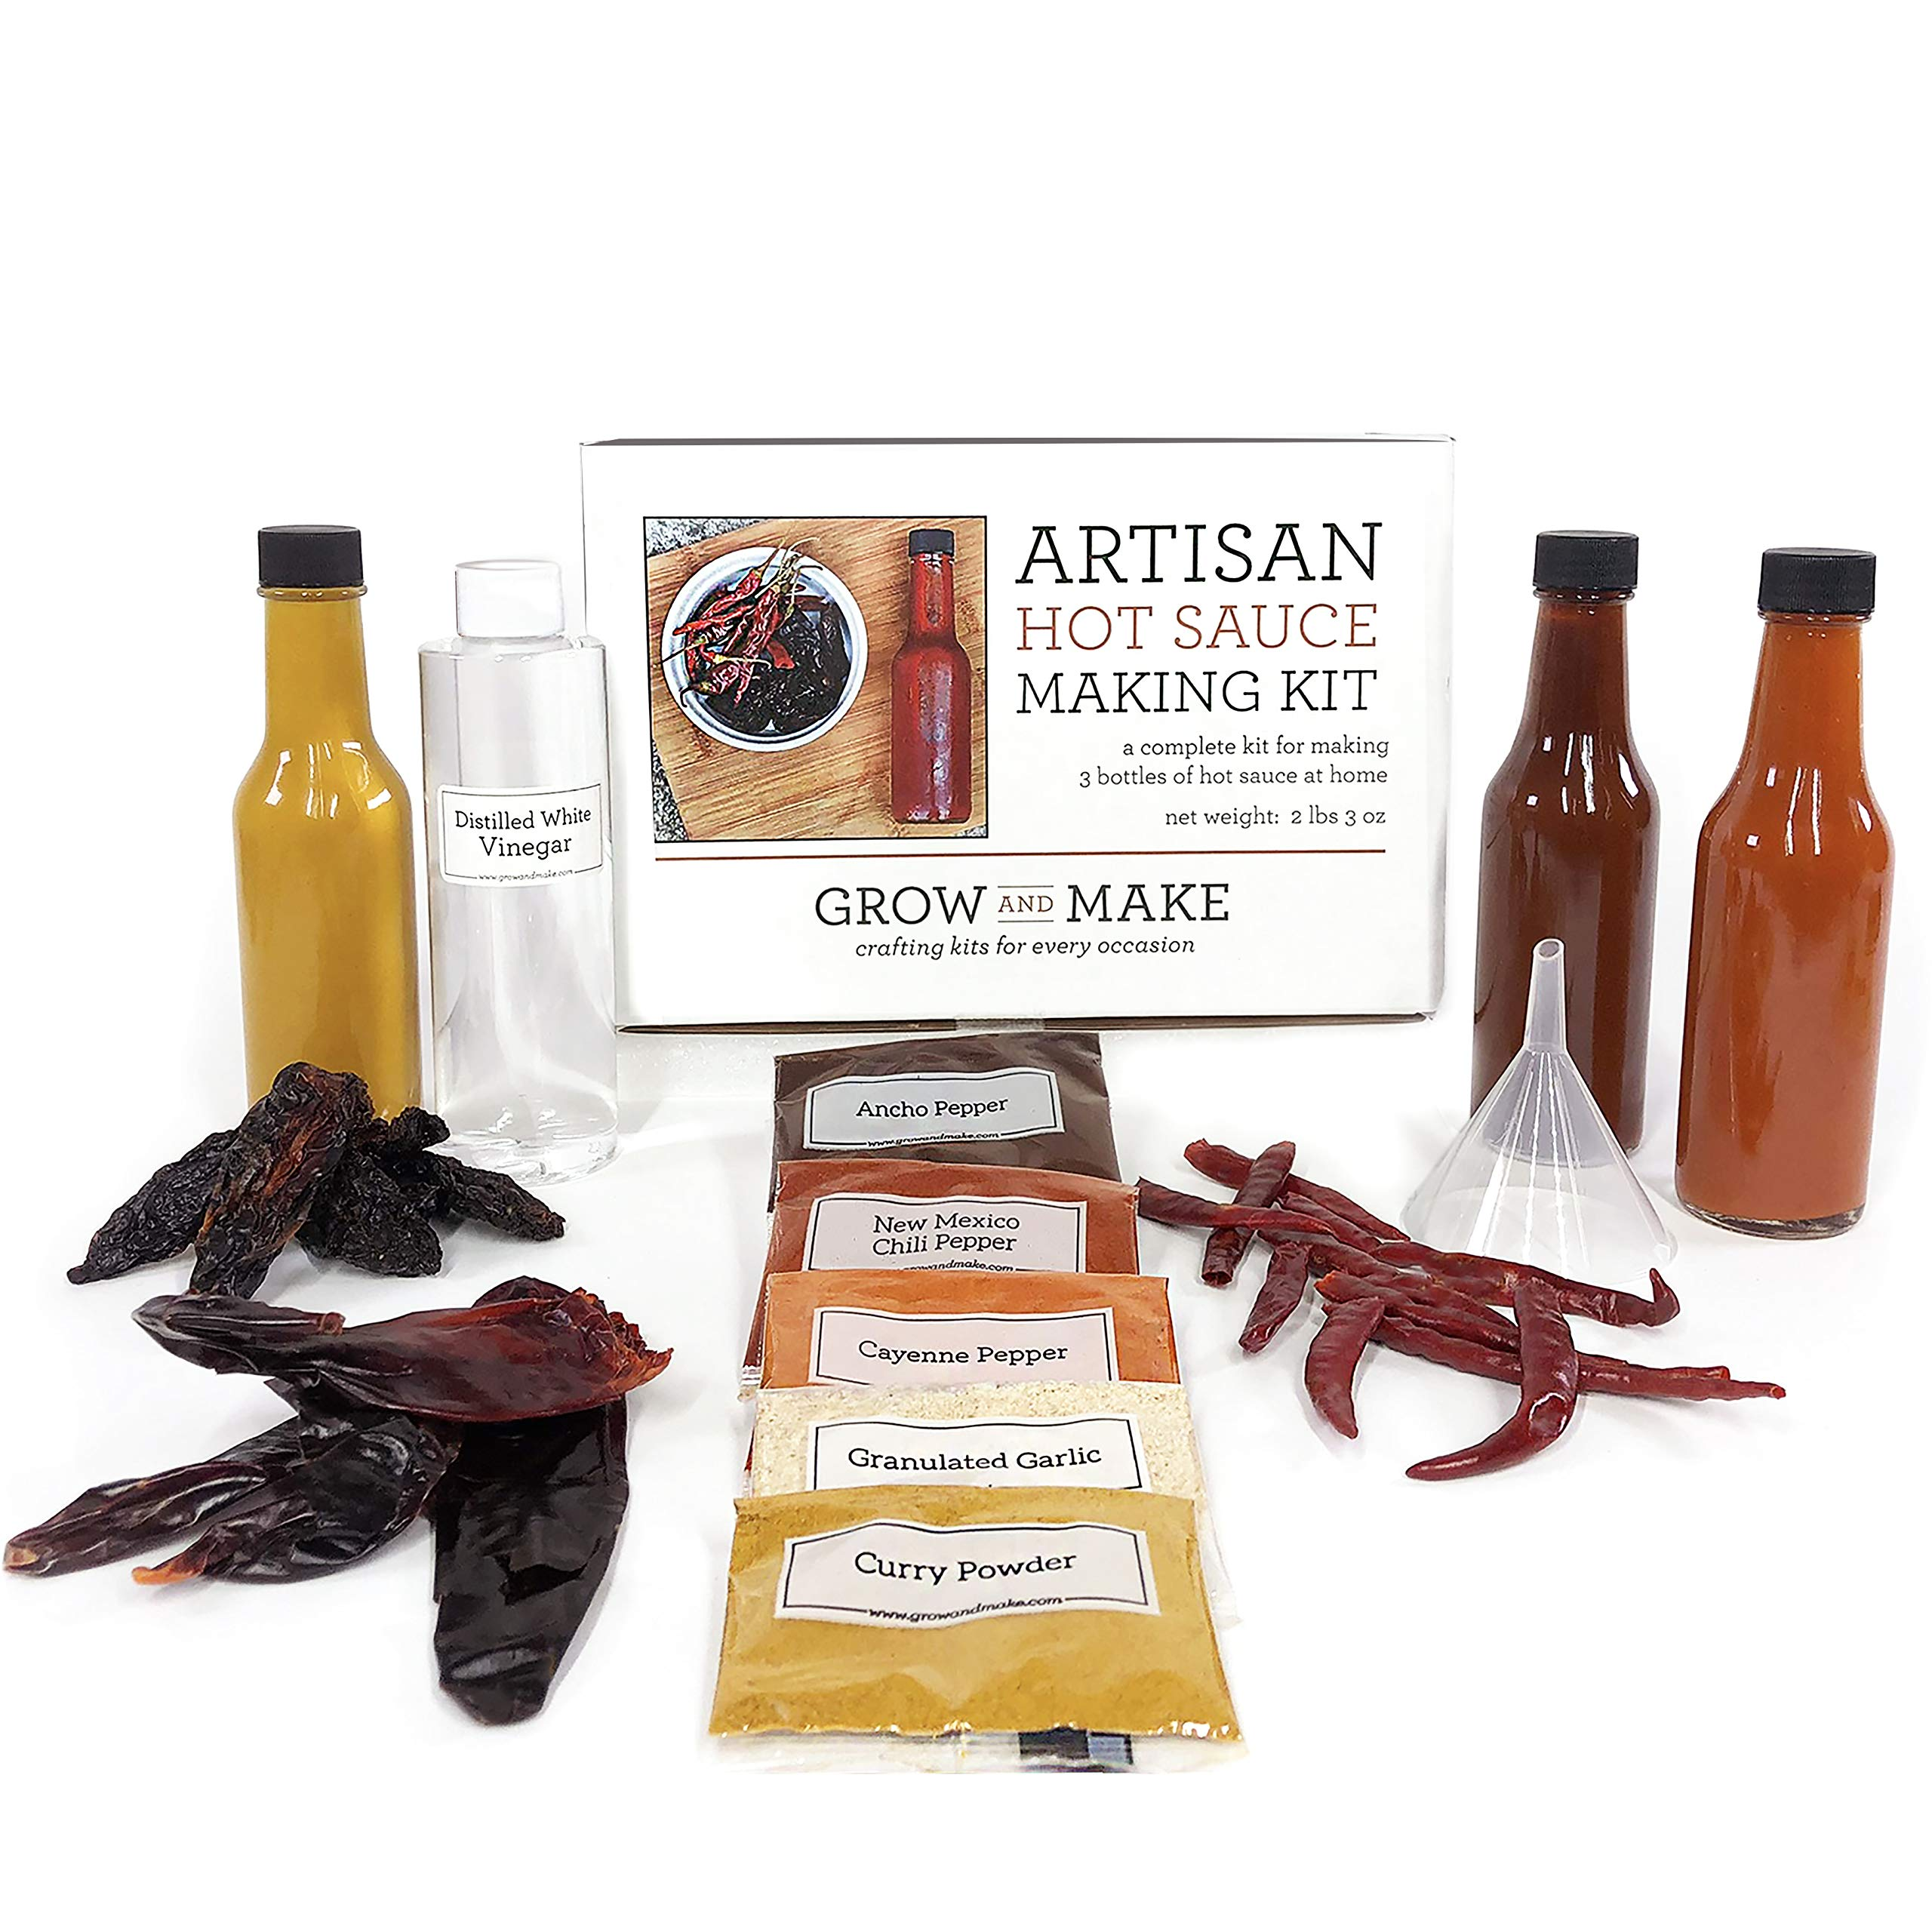 DIY Artisan Hot Sauce Making Kit - Cook Up 3 Easy Spicy Sauces at Home with this Gift Box of Quality Chipotle, Guajillo, and Arbol Peppers!